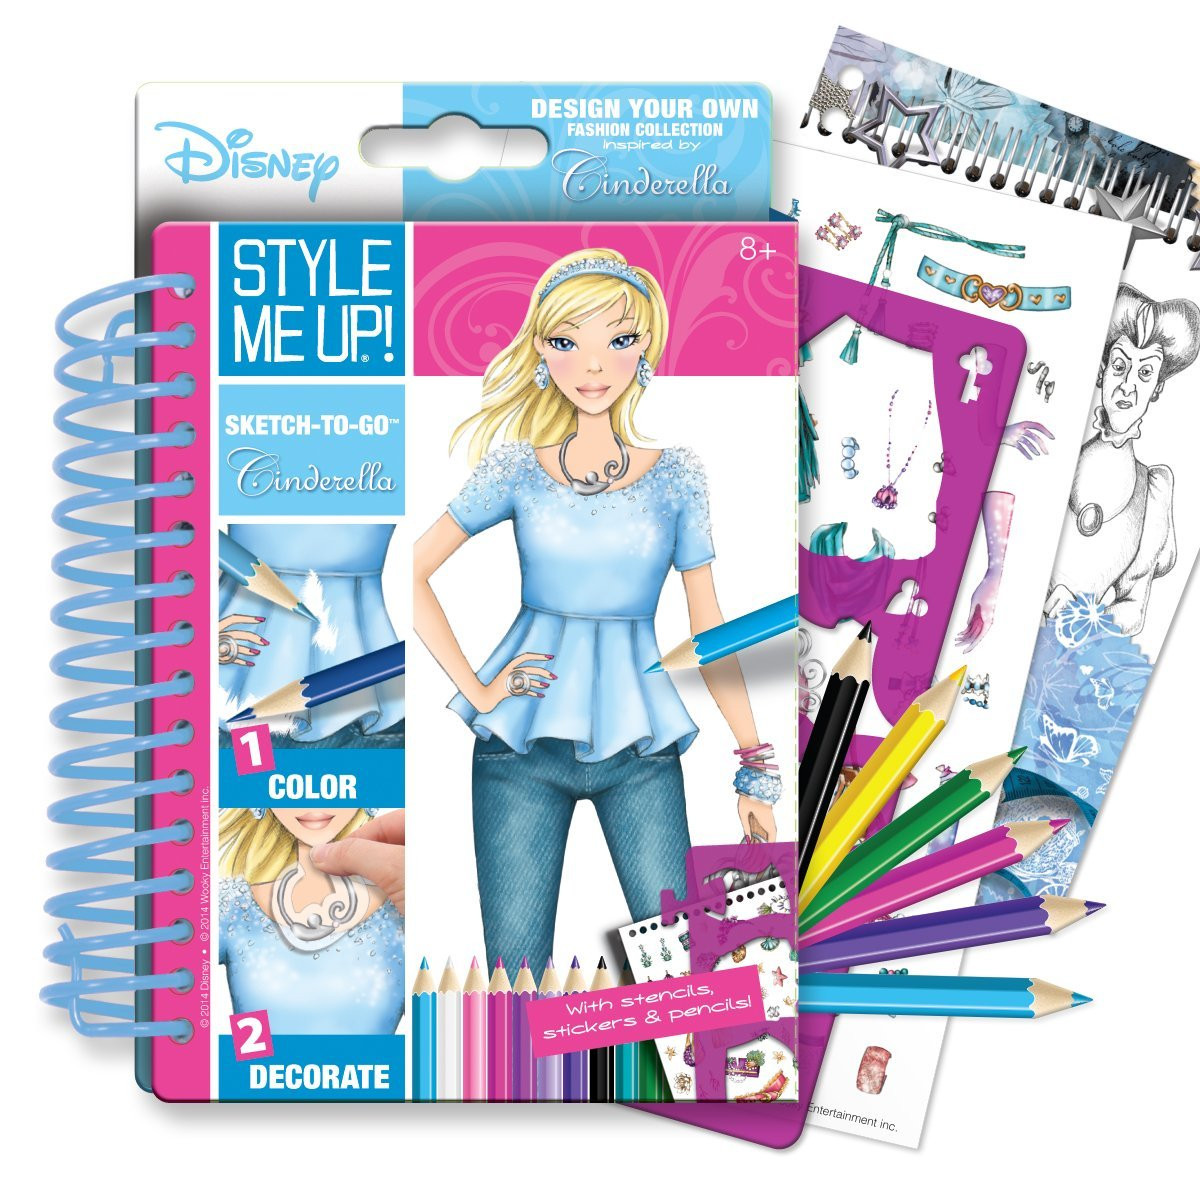 Beauty Accessories Sketchbook Style Me Up Cinderella 39 S Fashion 2092 Hobby Hunters